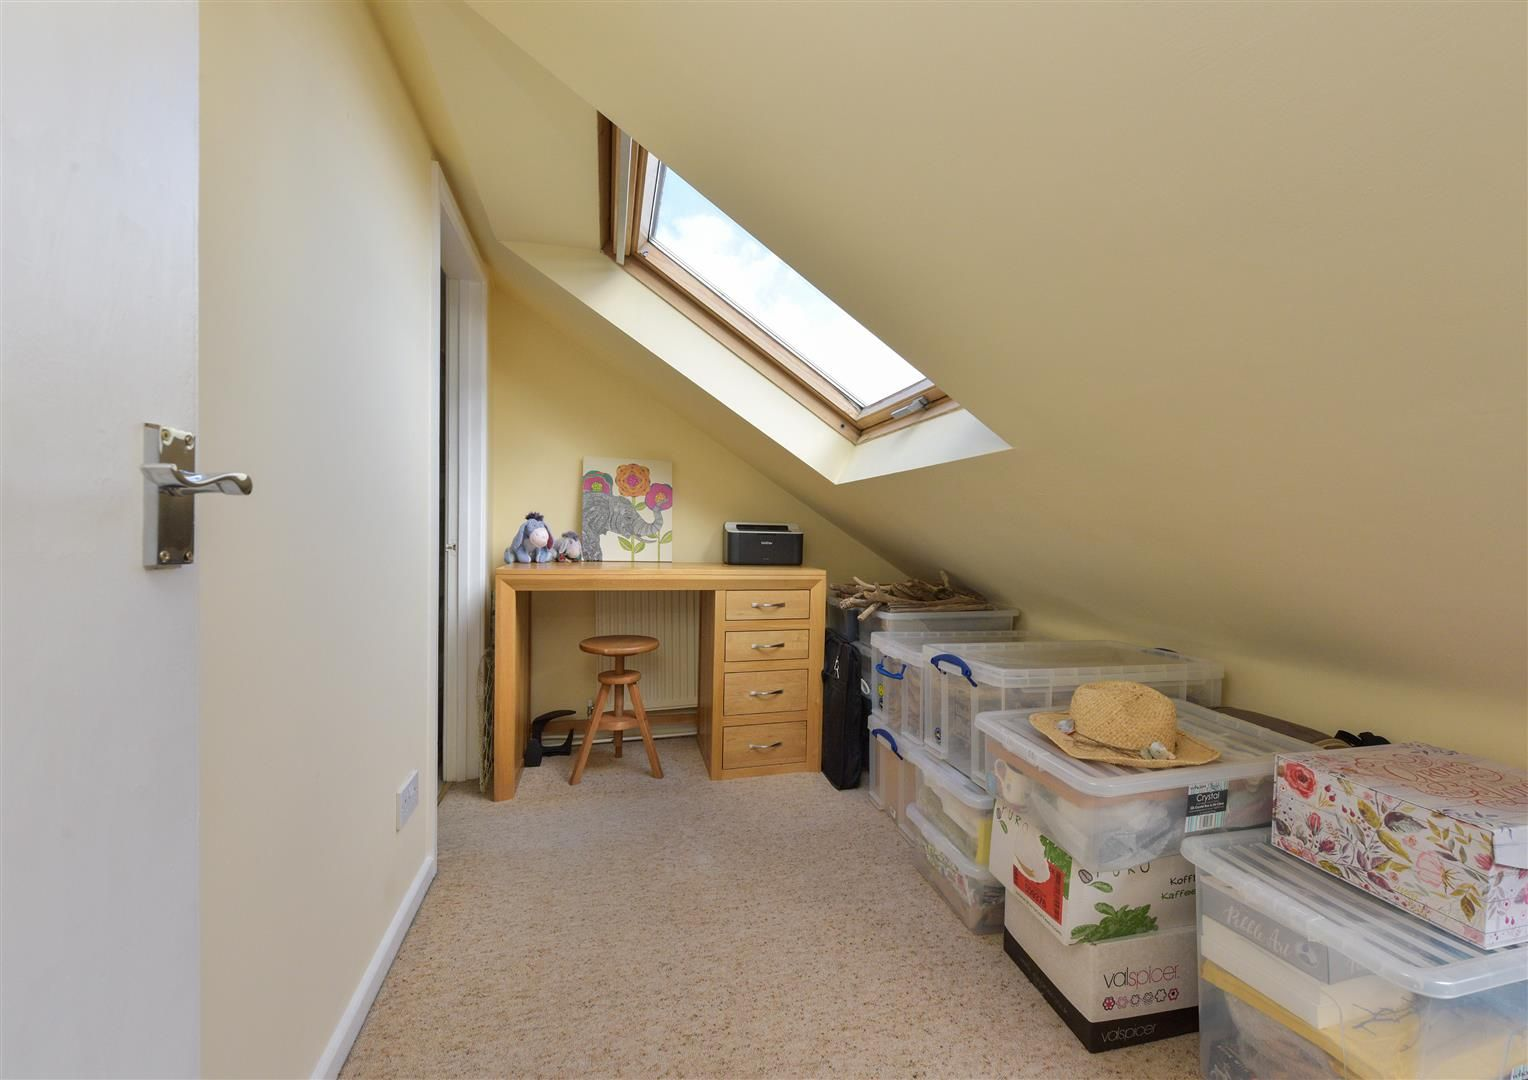 3 bed end-of-terrace for sale  - Property Image 16